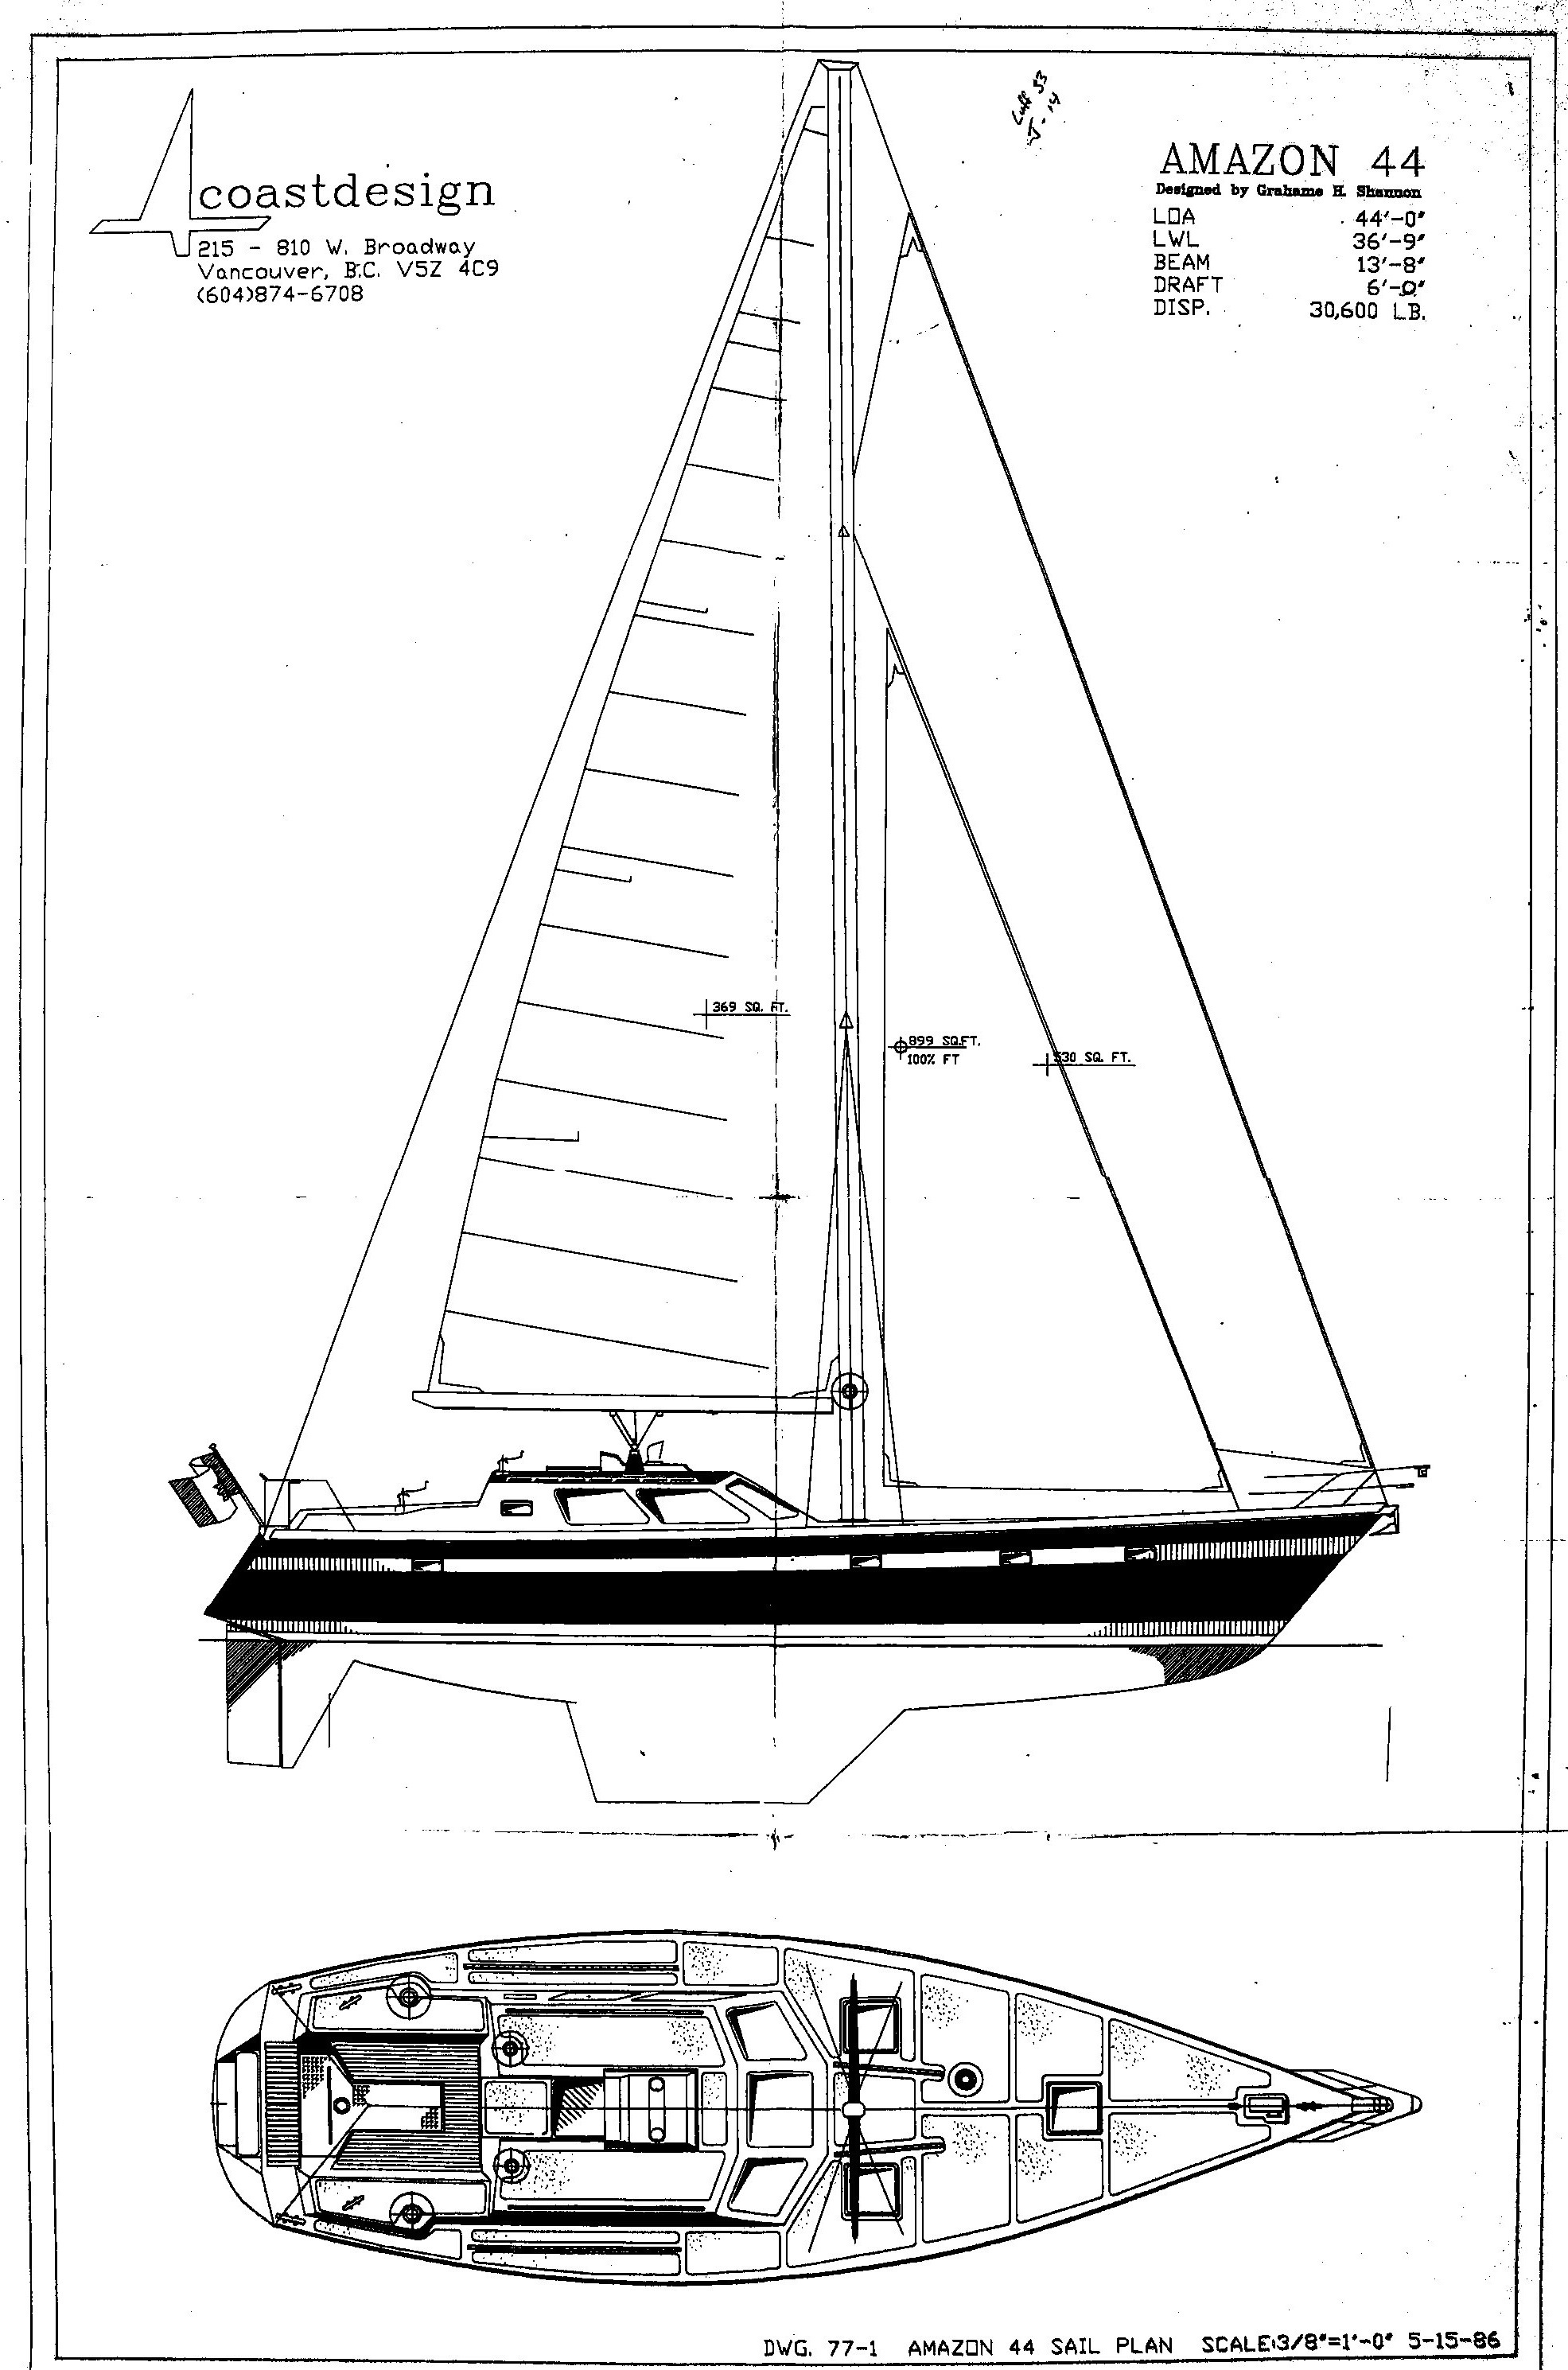 FINDING A FIGURE 8 VOYAGE BOAT: The Backstory